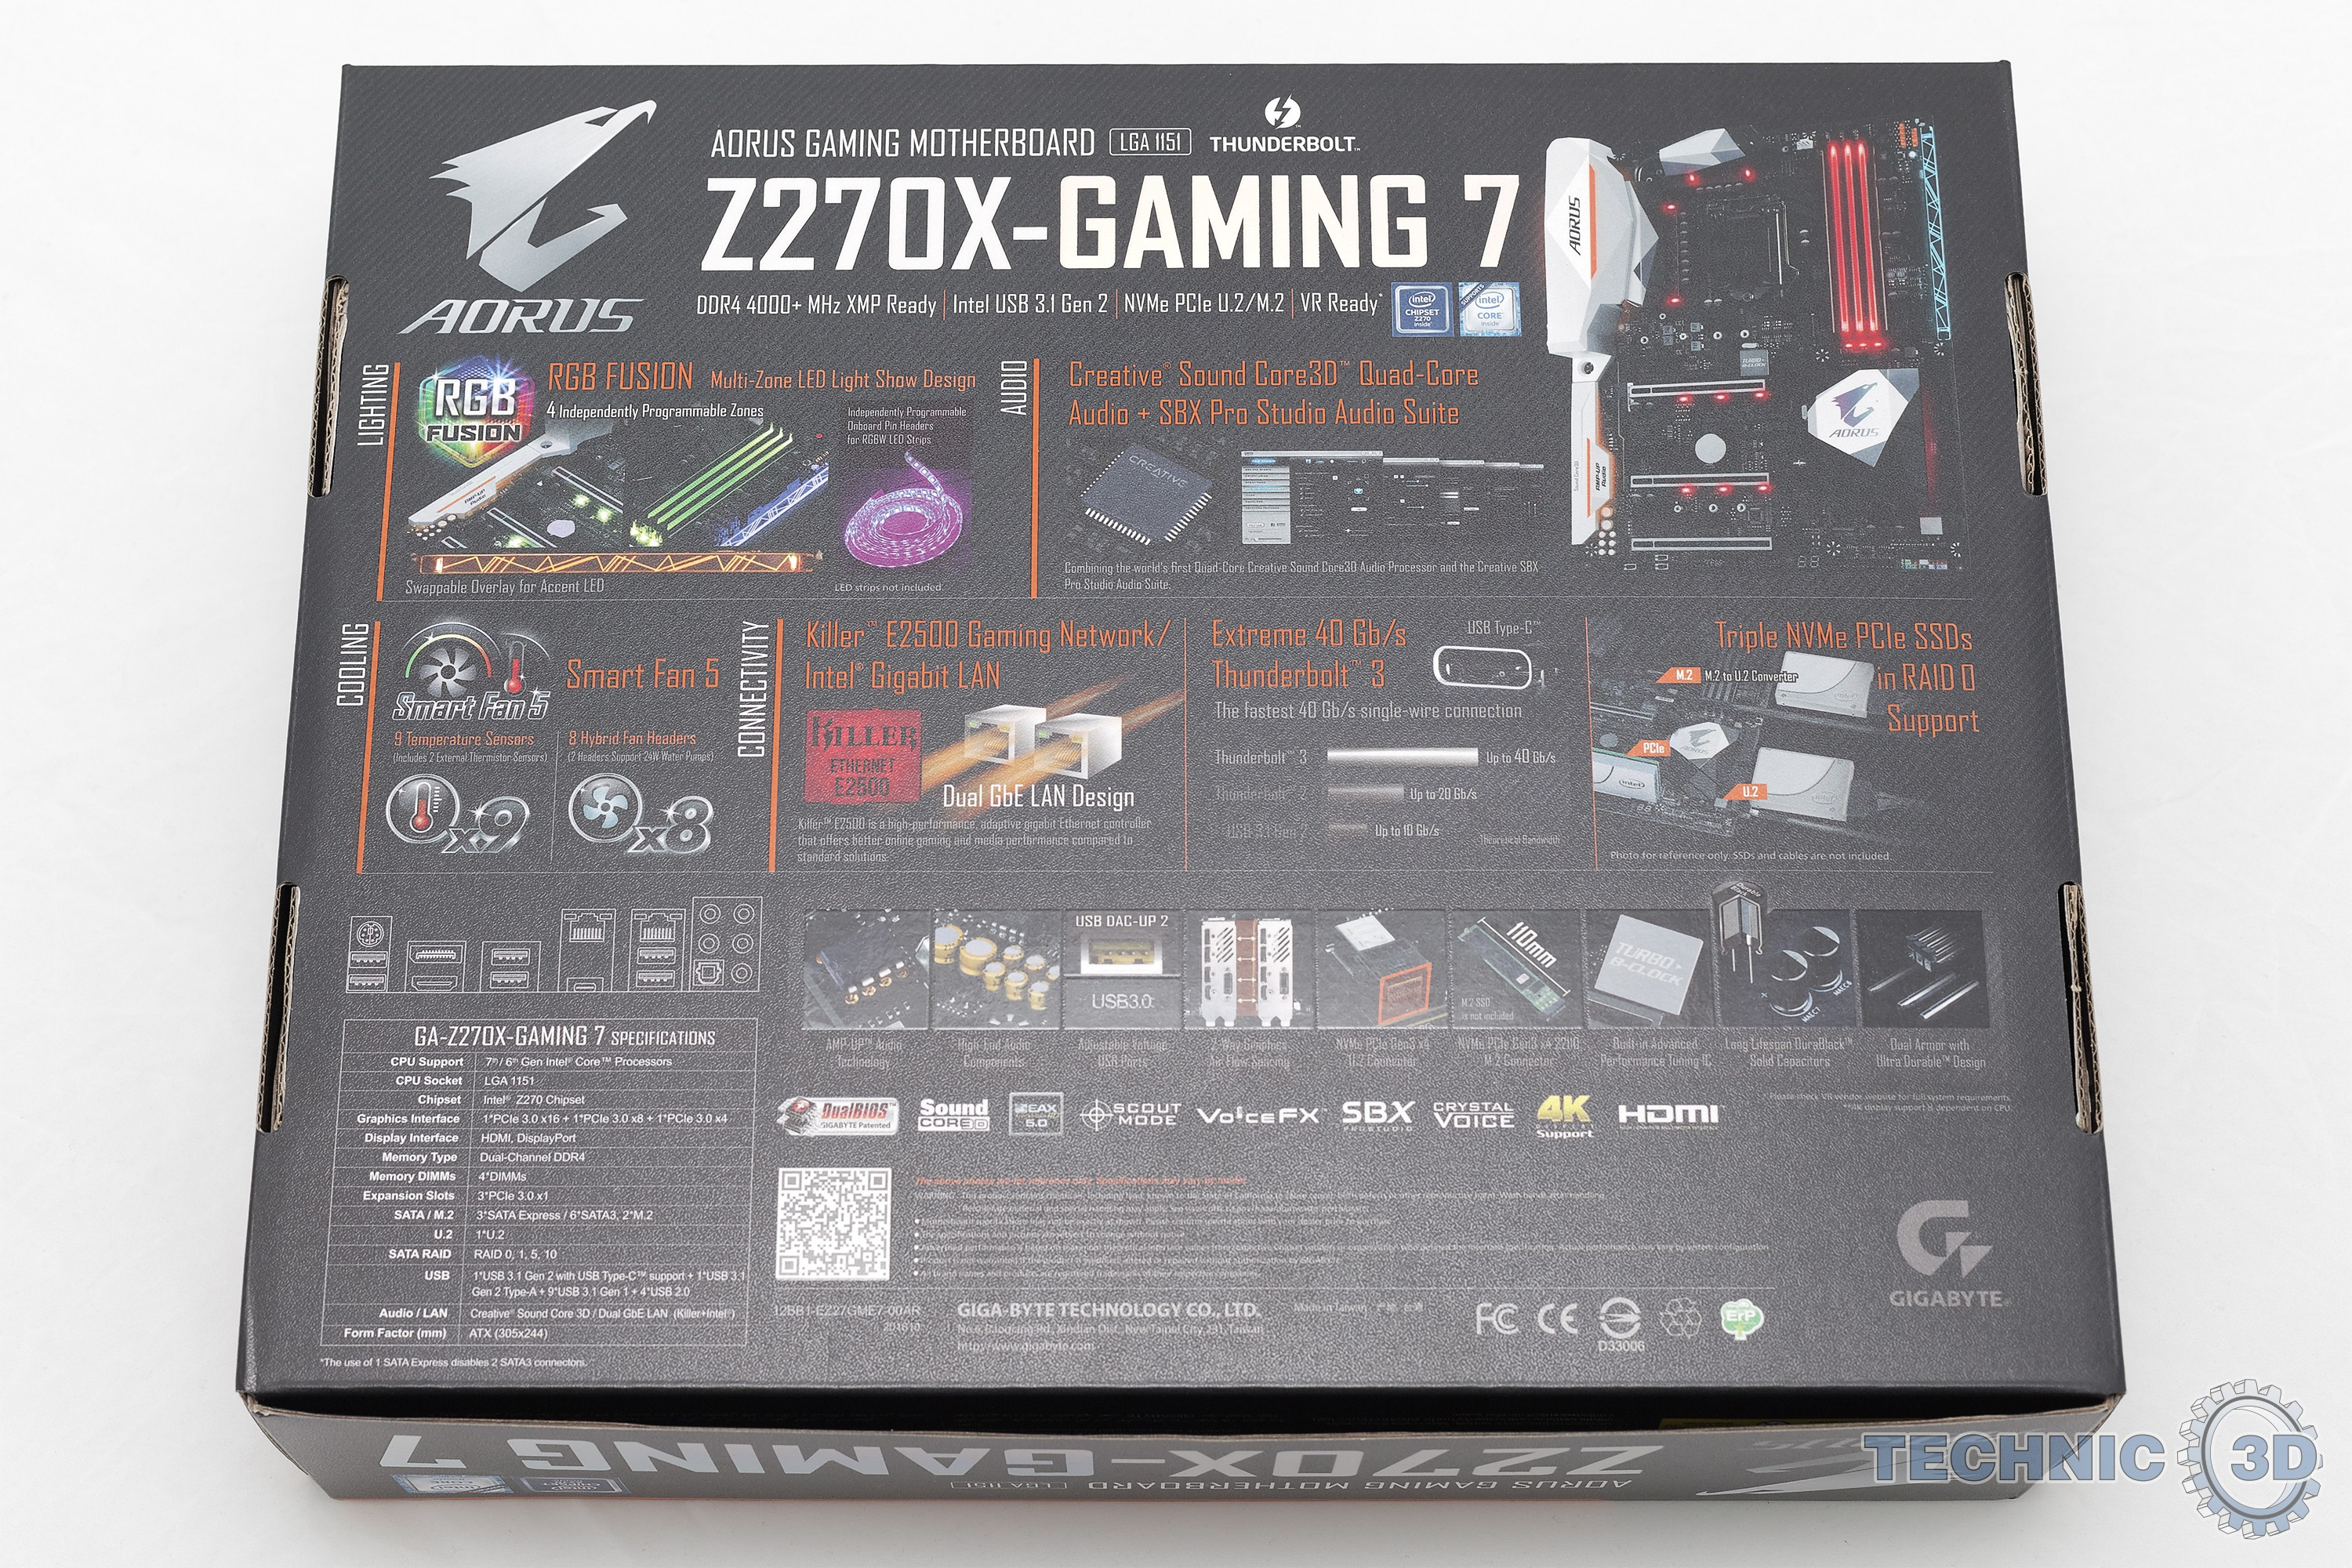 Gigabyte AORUS Z270X-Gaming 7 Mainboard im Test | Review | Technic3D